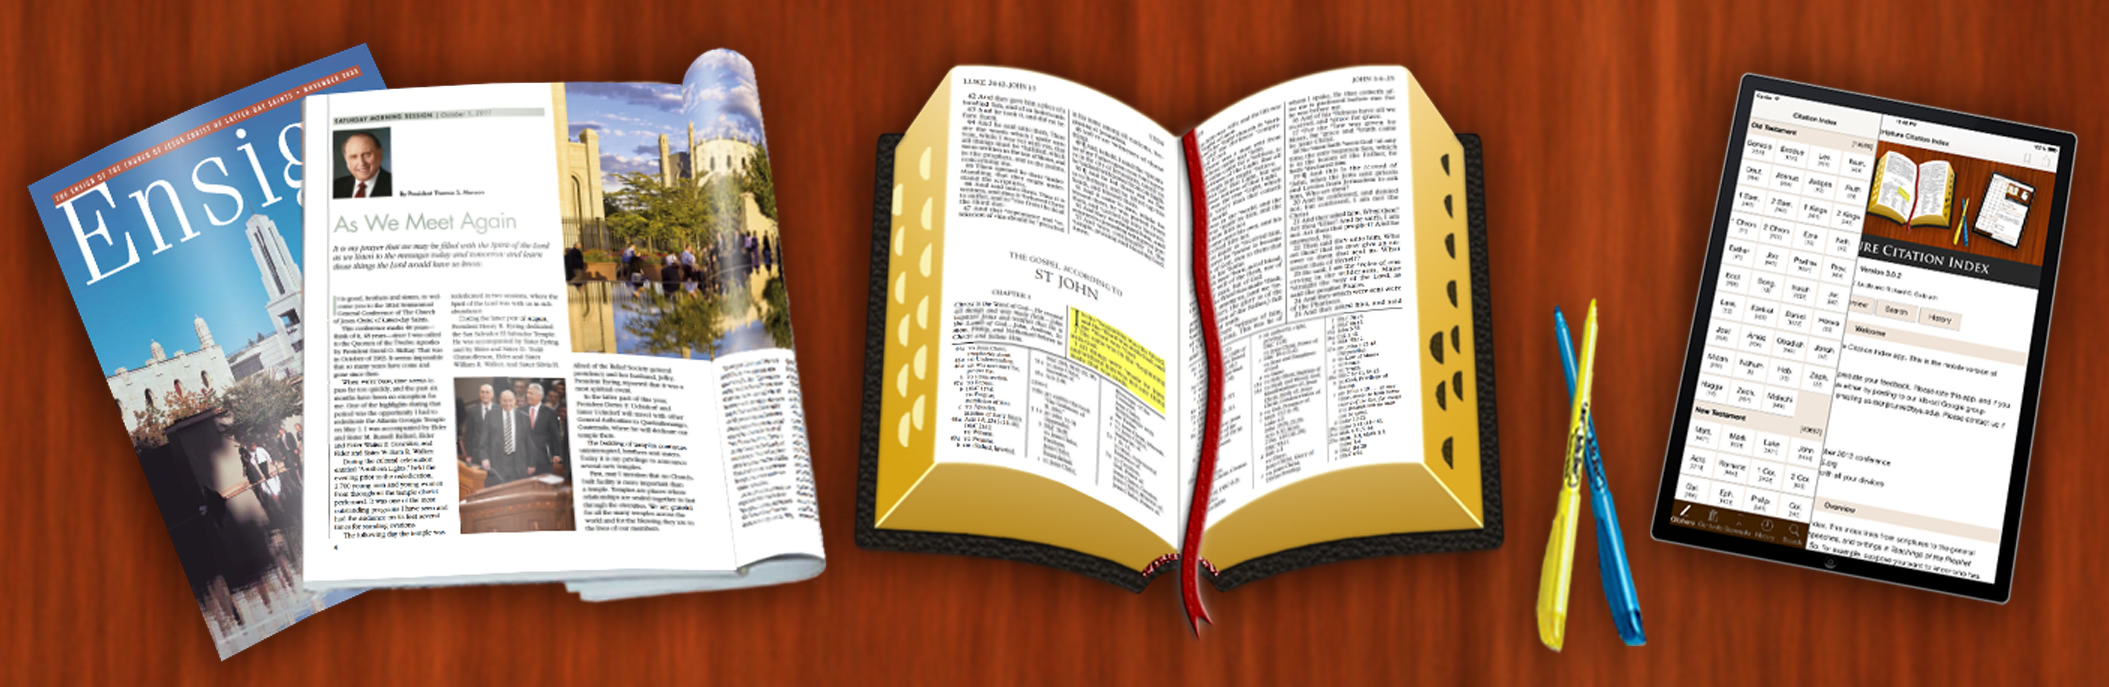 2nd timothy 2 clipart freeuse library Scripture Citation Index freeuse library